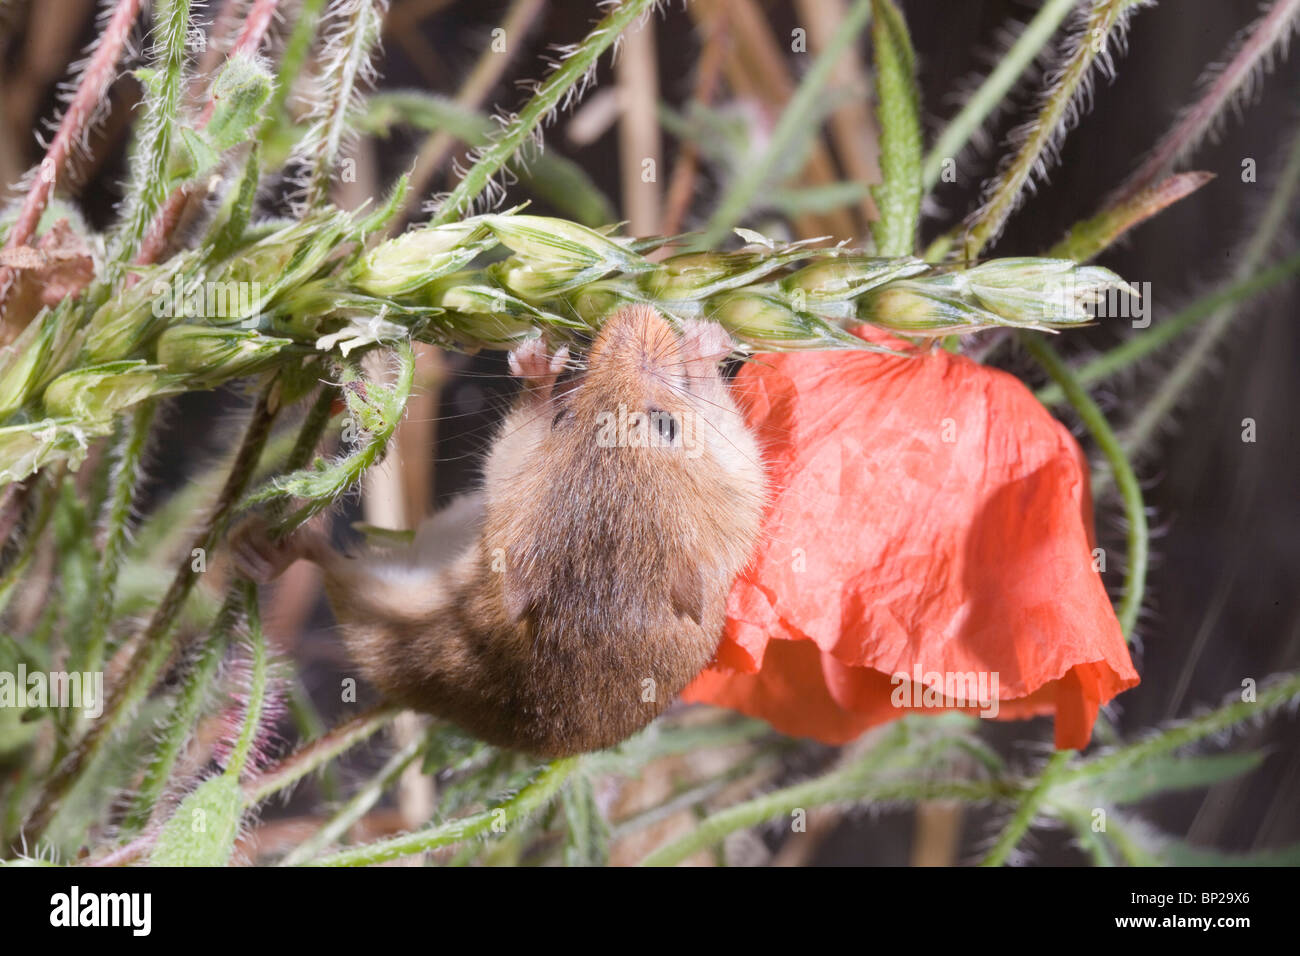 Harvest Mouse (Micromys minutus). Male feeding on wheat seed head or panicle amongst Field Poppies (Papaver rhoeas). - Stock Image